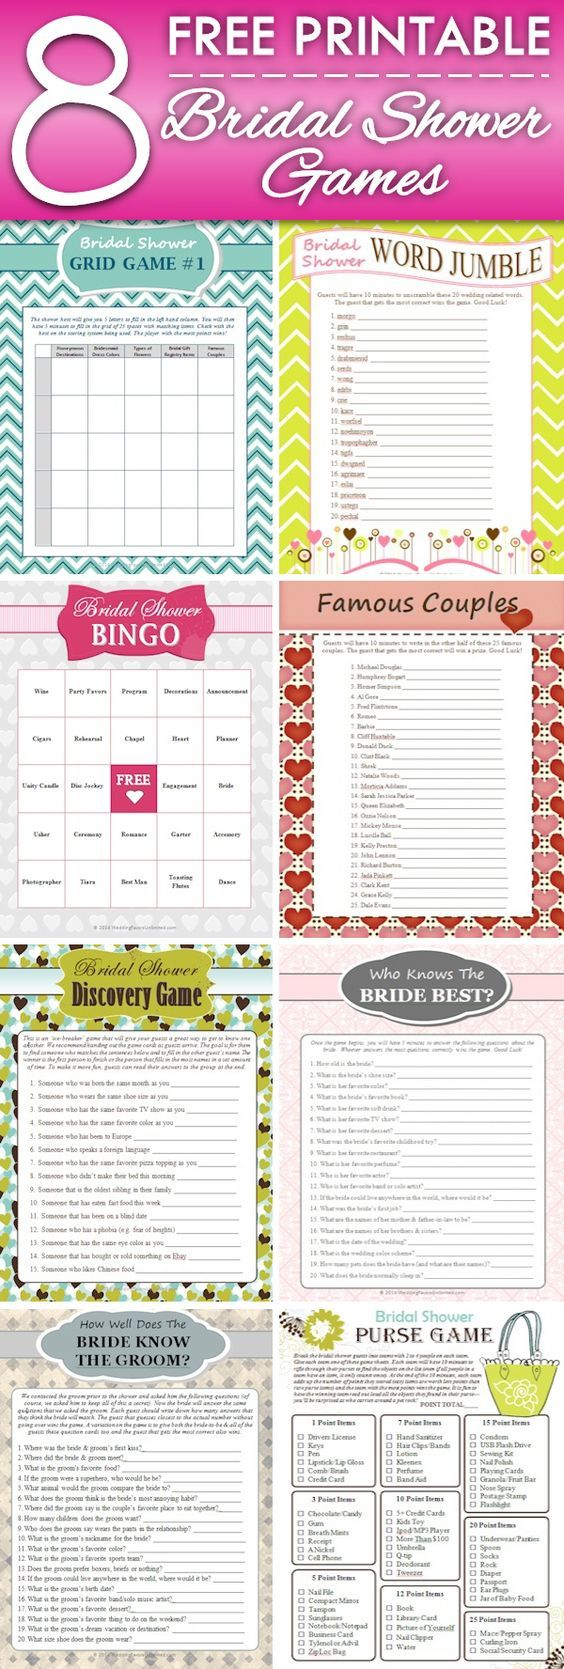 8 FREE Printable Bridal Shower Games - download some fun today!: